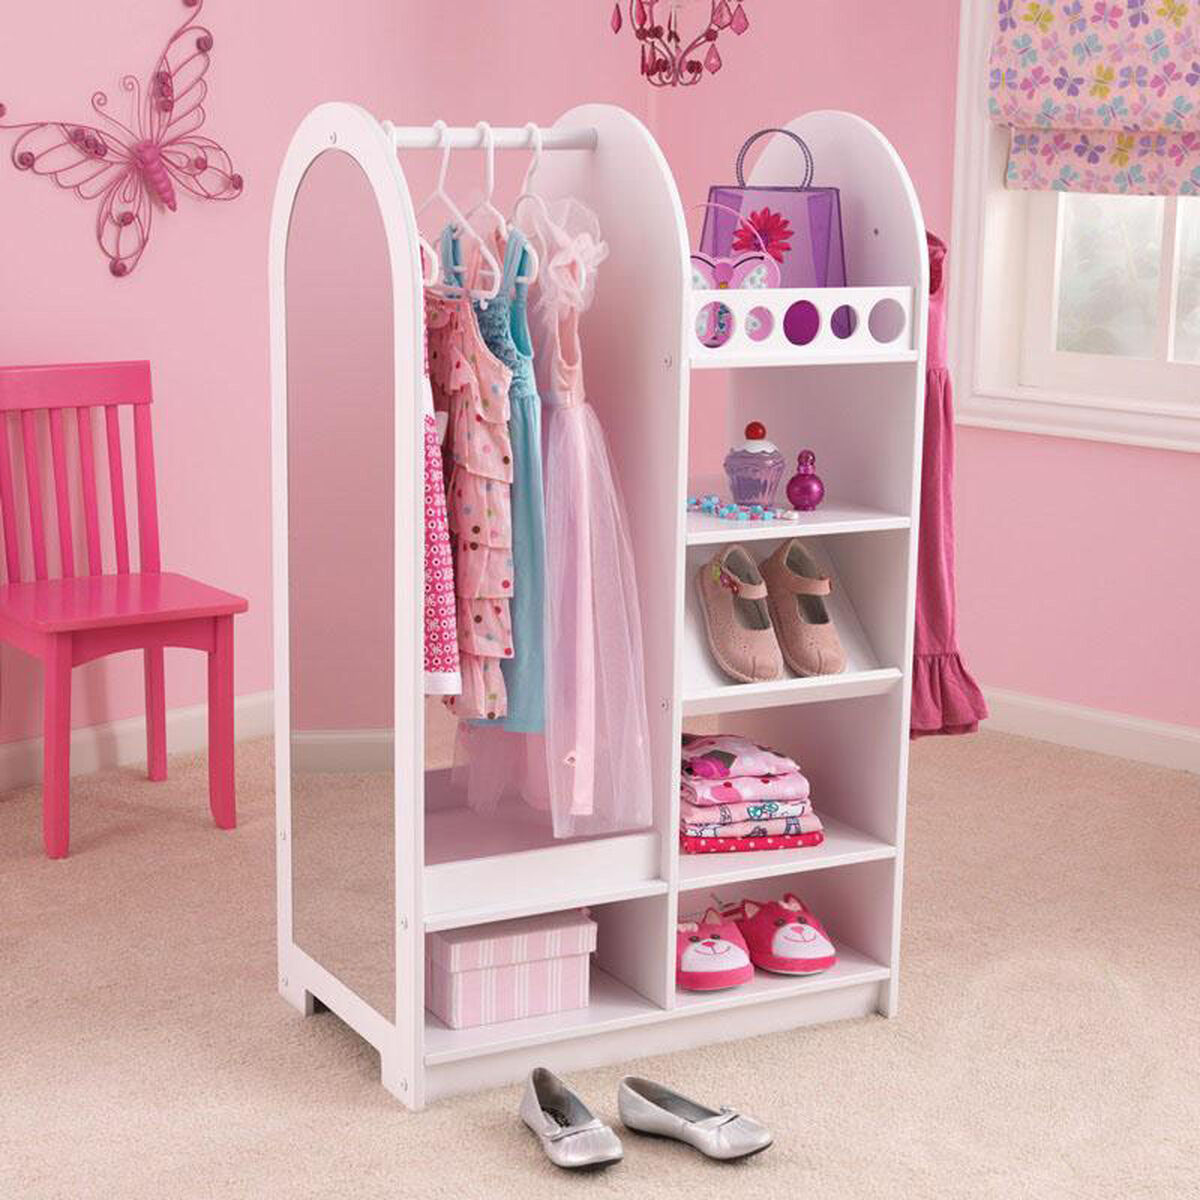 Our Kids Size Play Dress Up Fashion Station With Mirror And Storage Options White Is